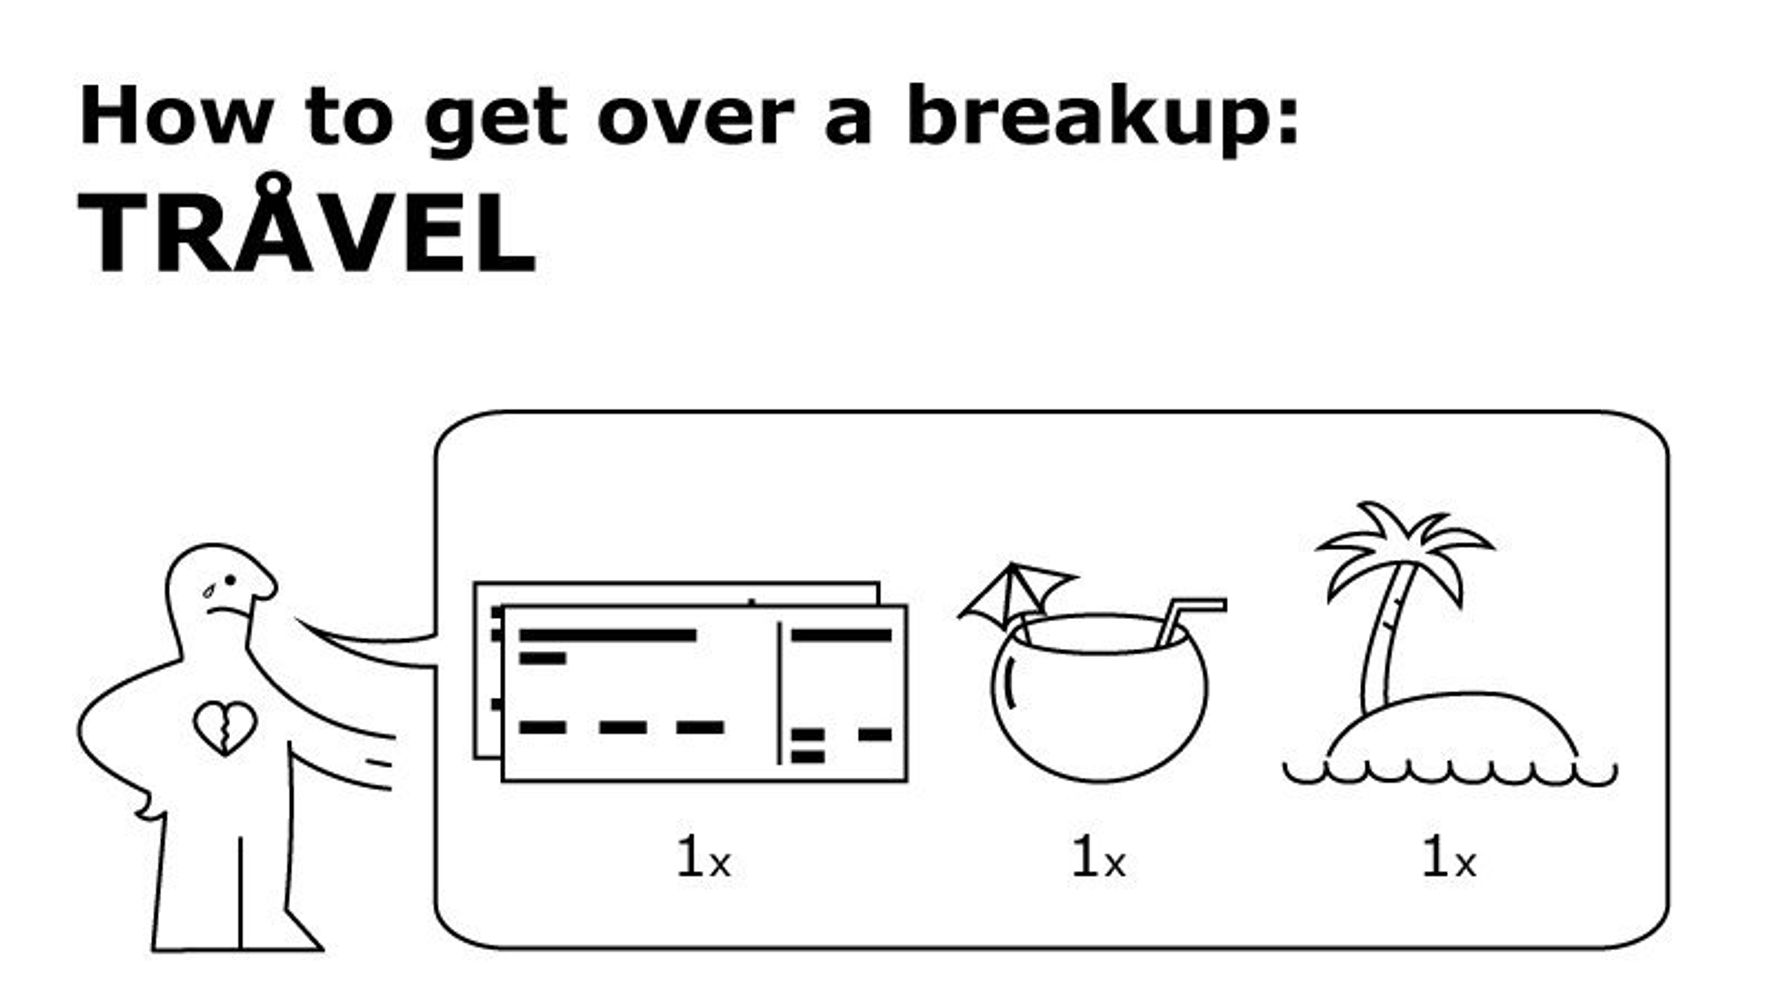 Let This Ikea-Inspired Manual Be Your Guide To Getting